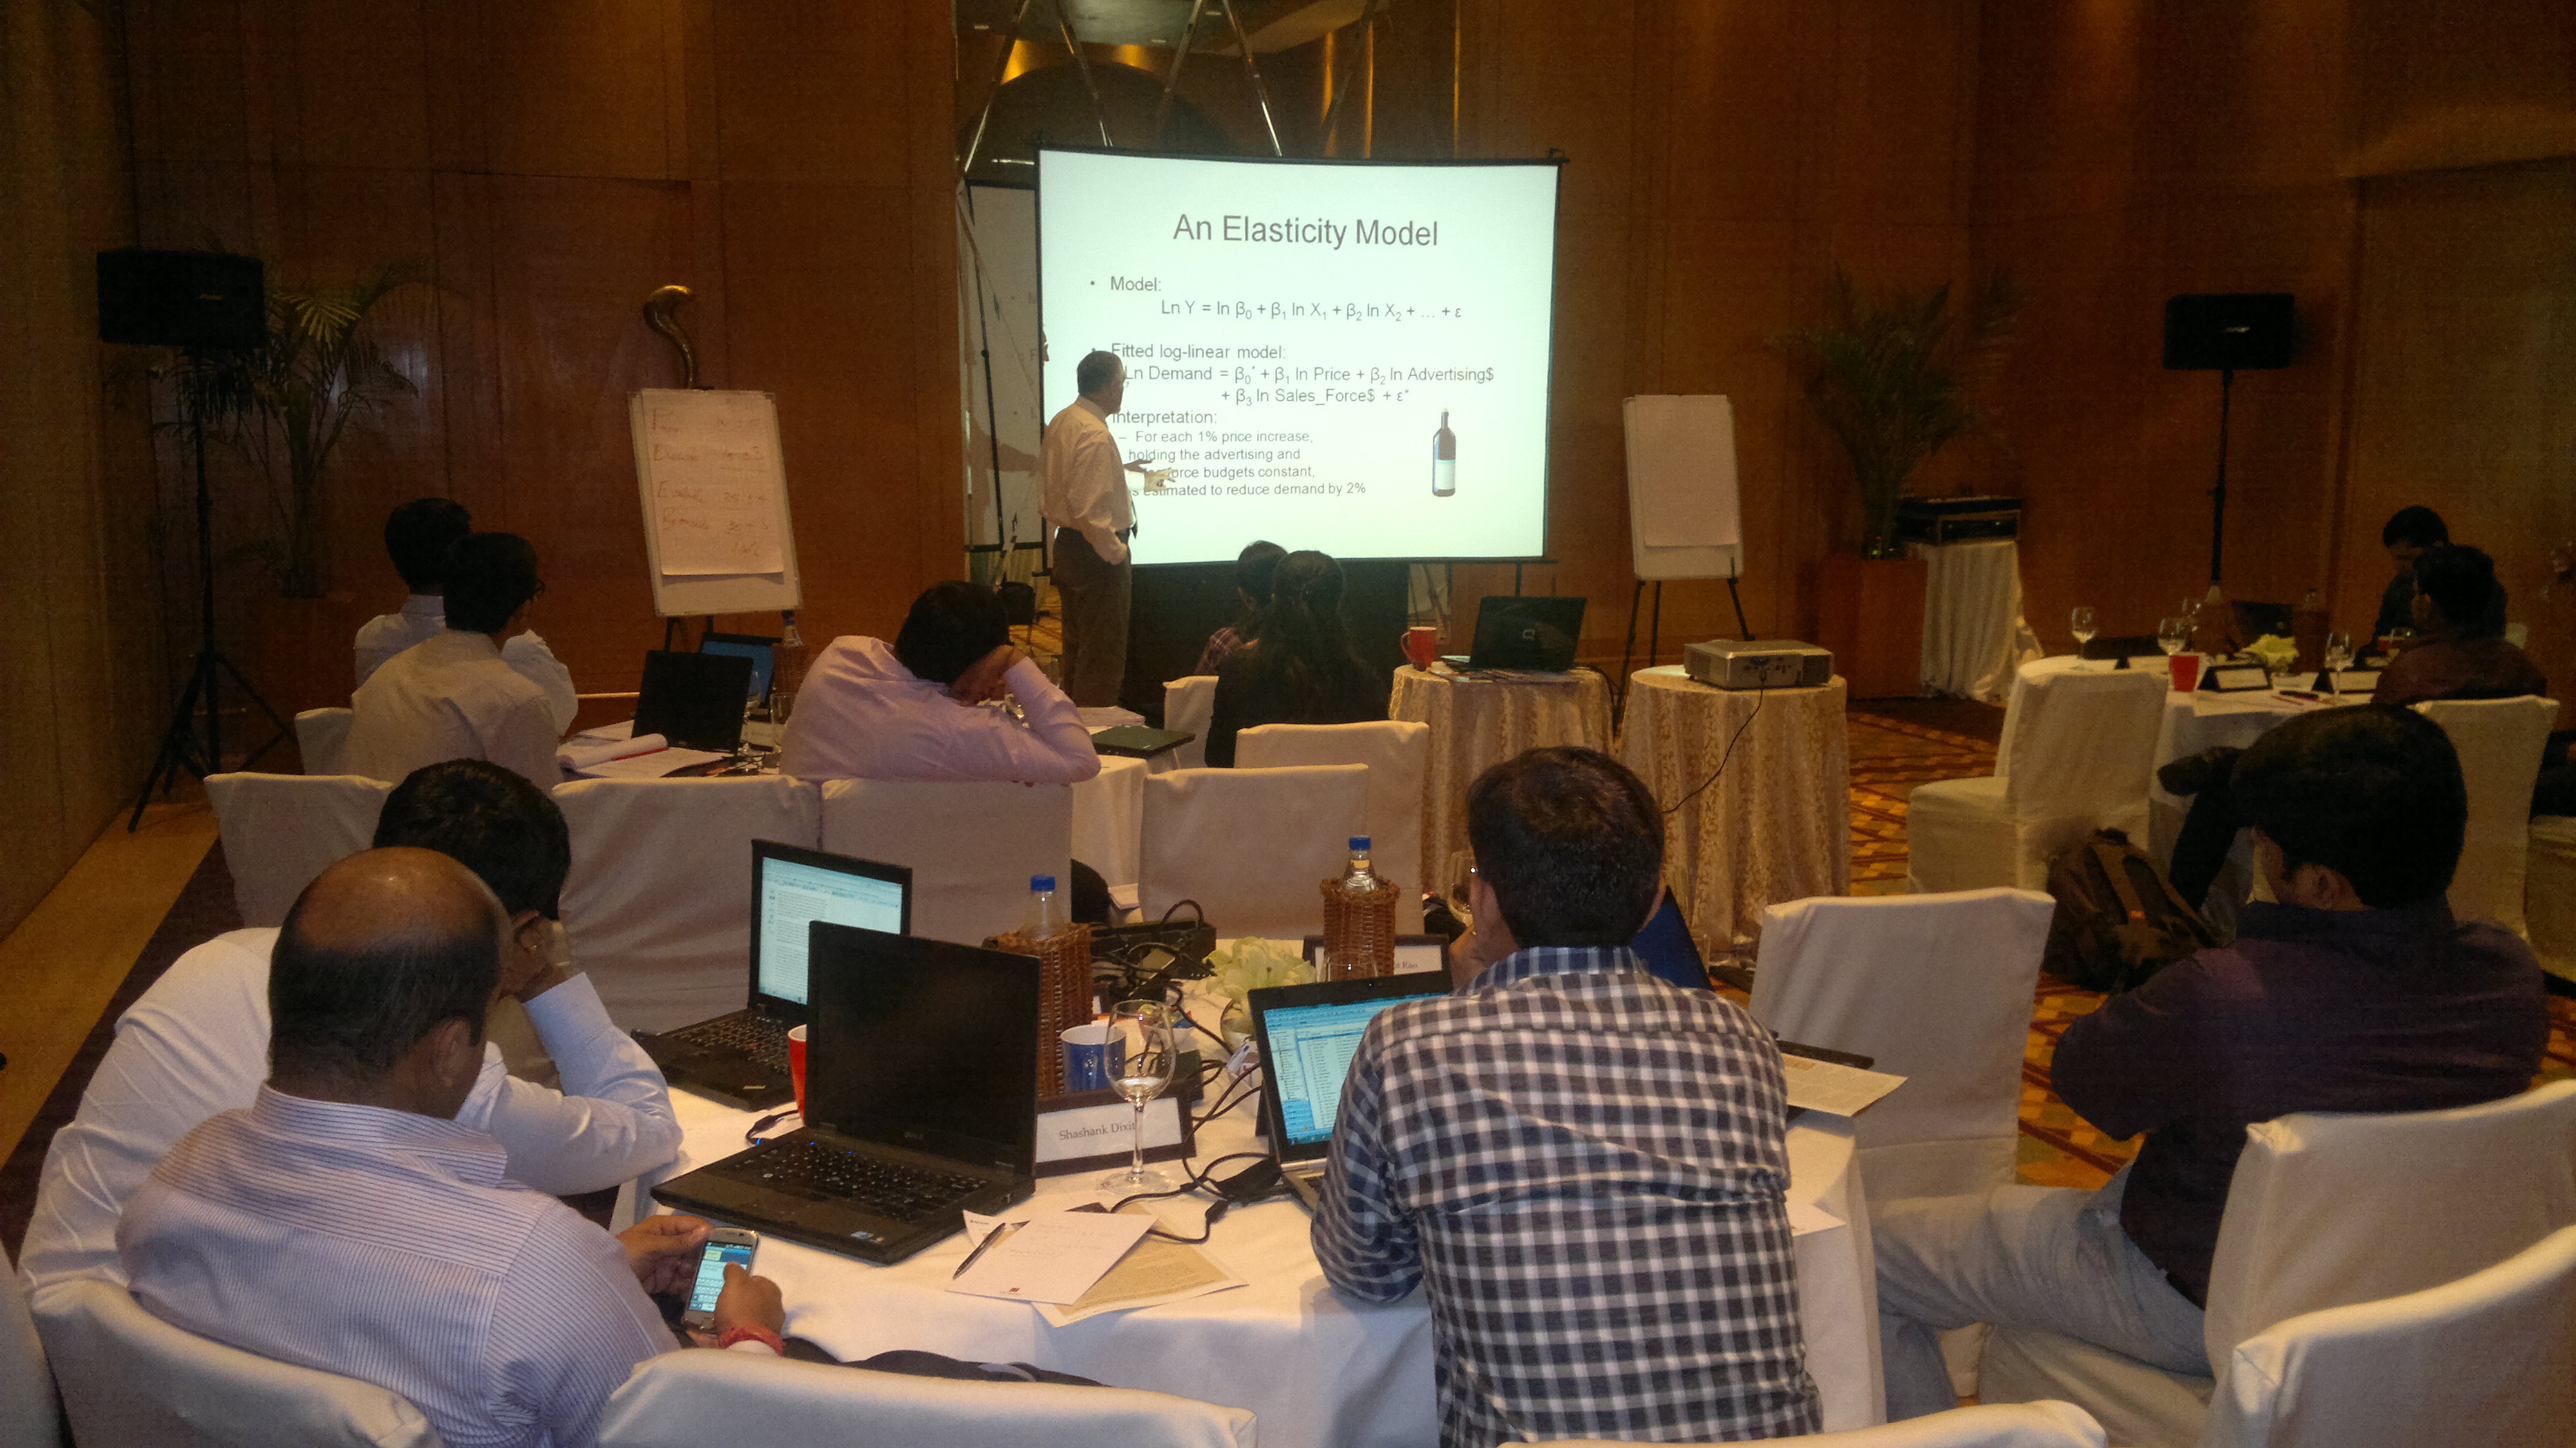 muhakat - Intentional Speaker at the Certified Professional In